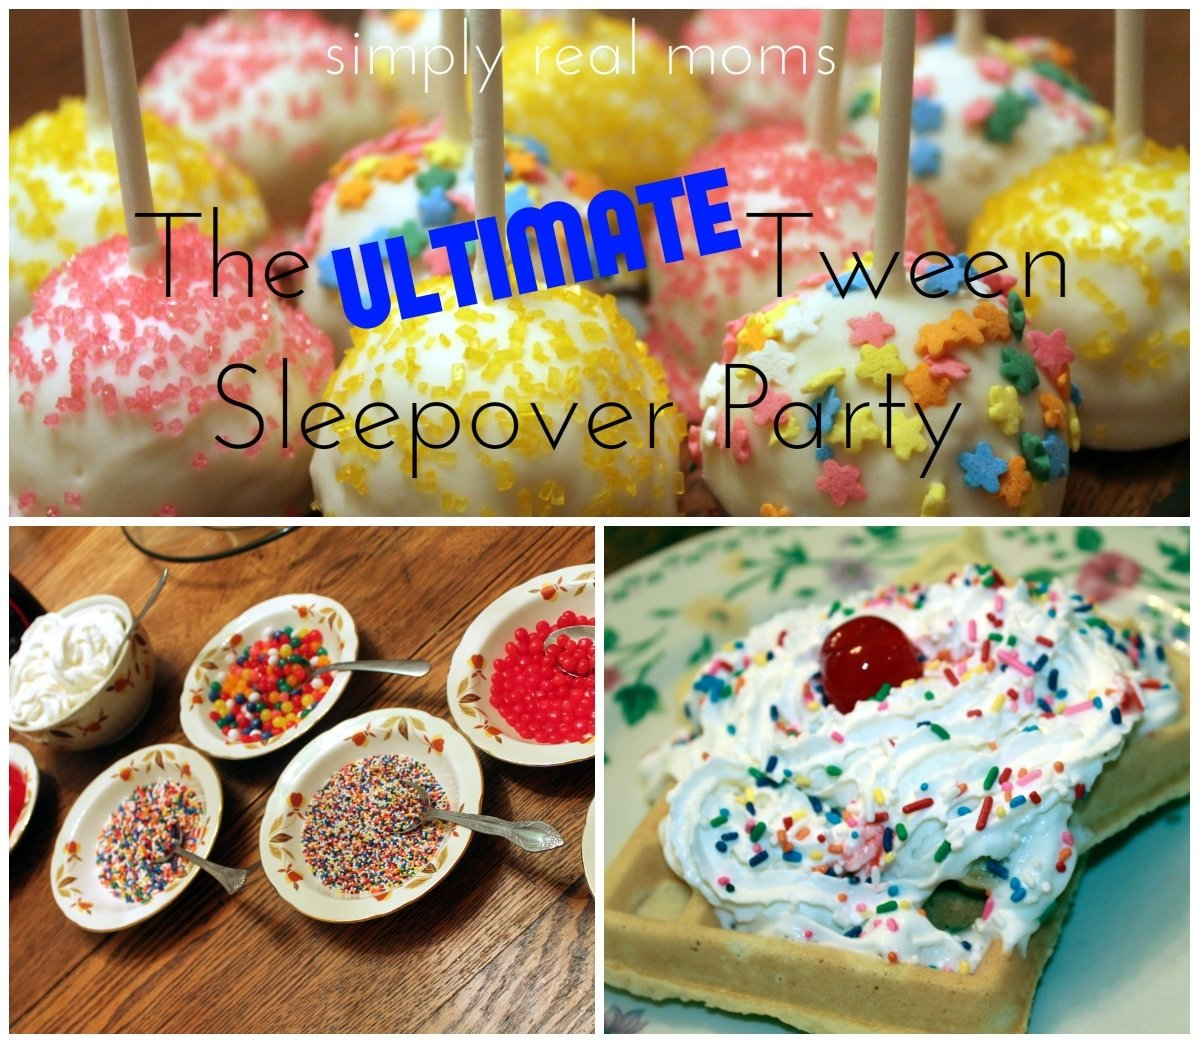 the ultimate tween sleepover party ideas! - simply real moms